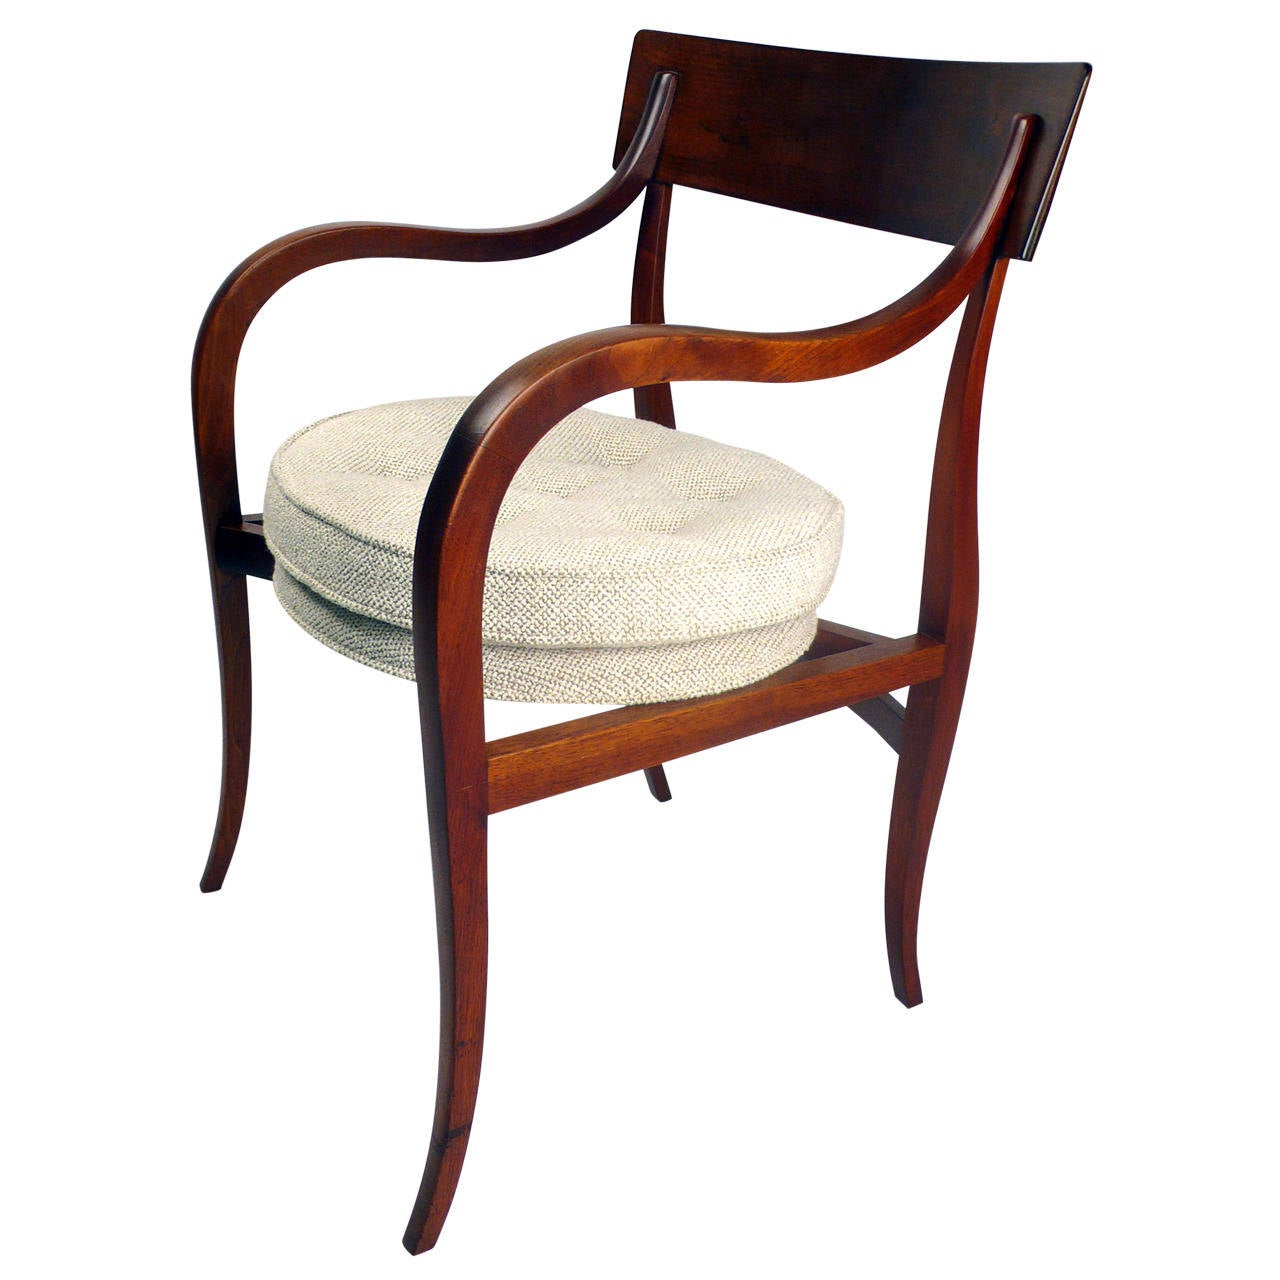 Edward Wormley for Dunbar Alexandria chair, 1950s, 20CDesign.com